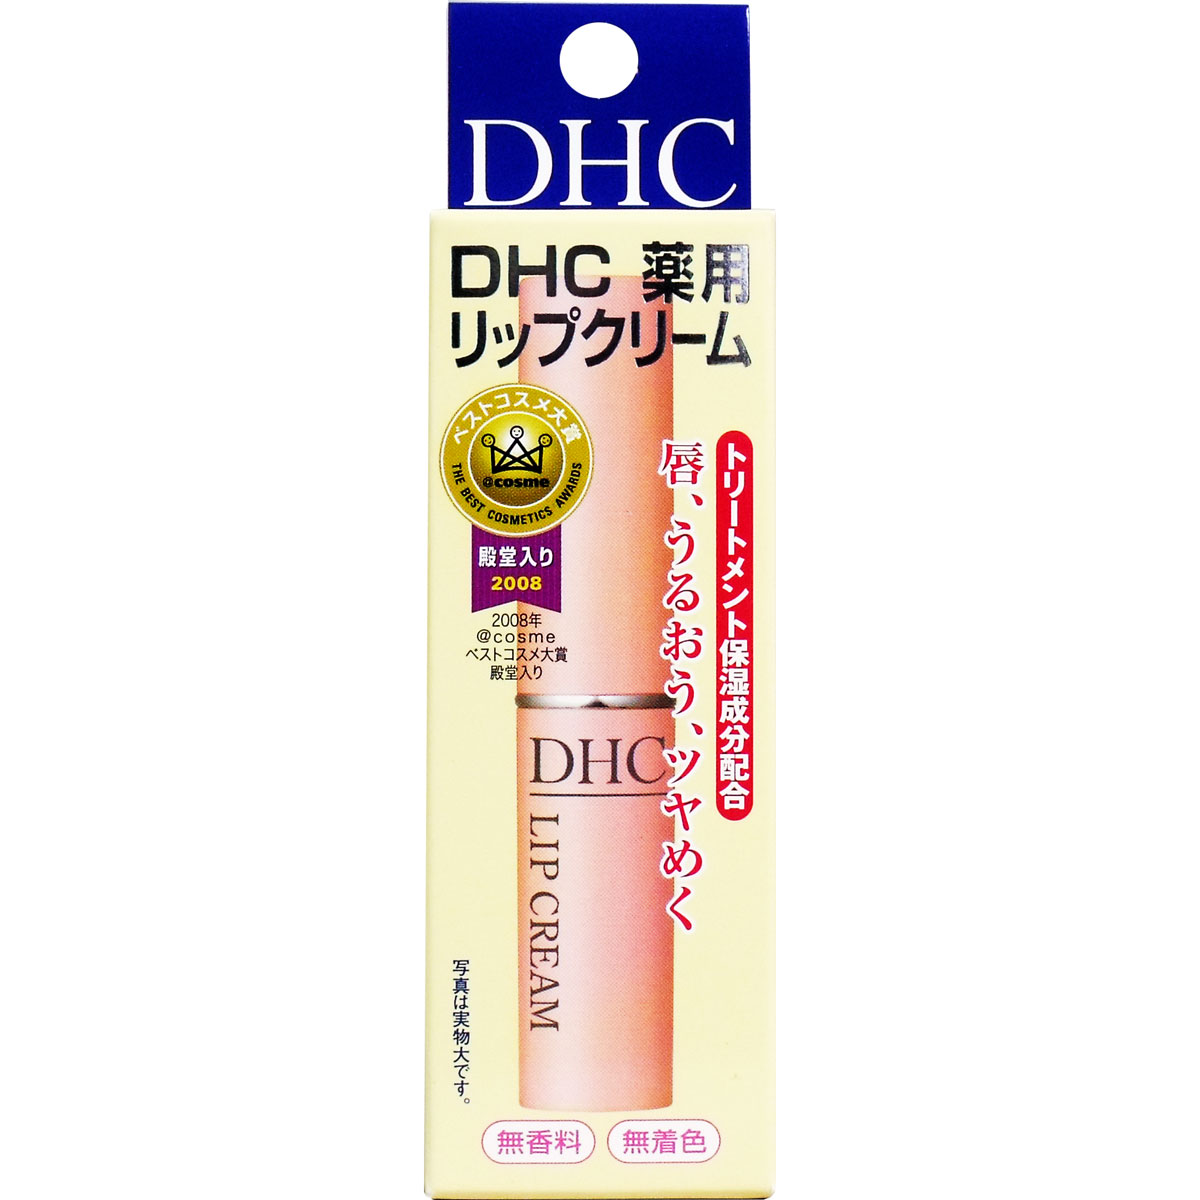 DHC 護唇膏